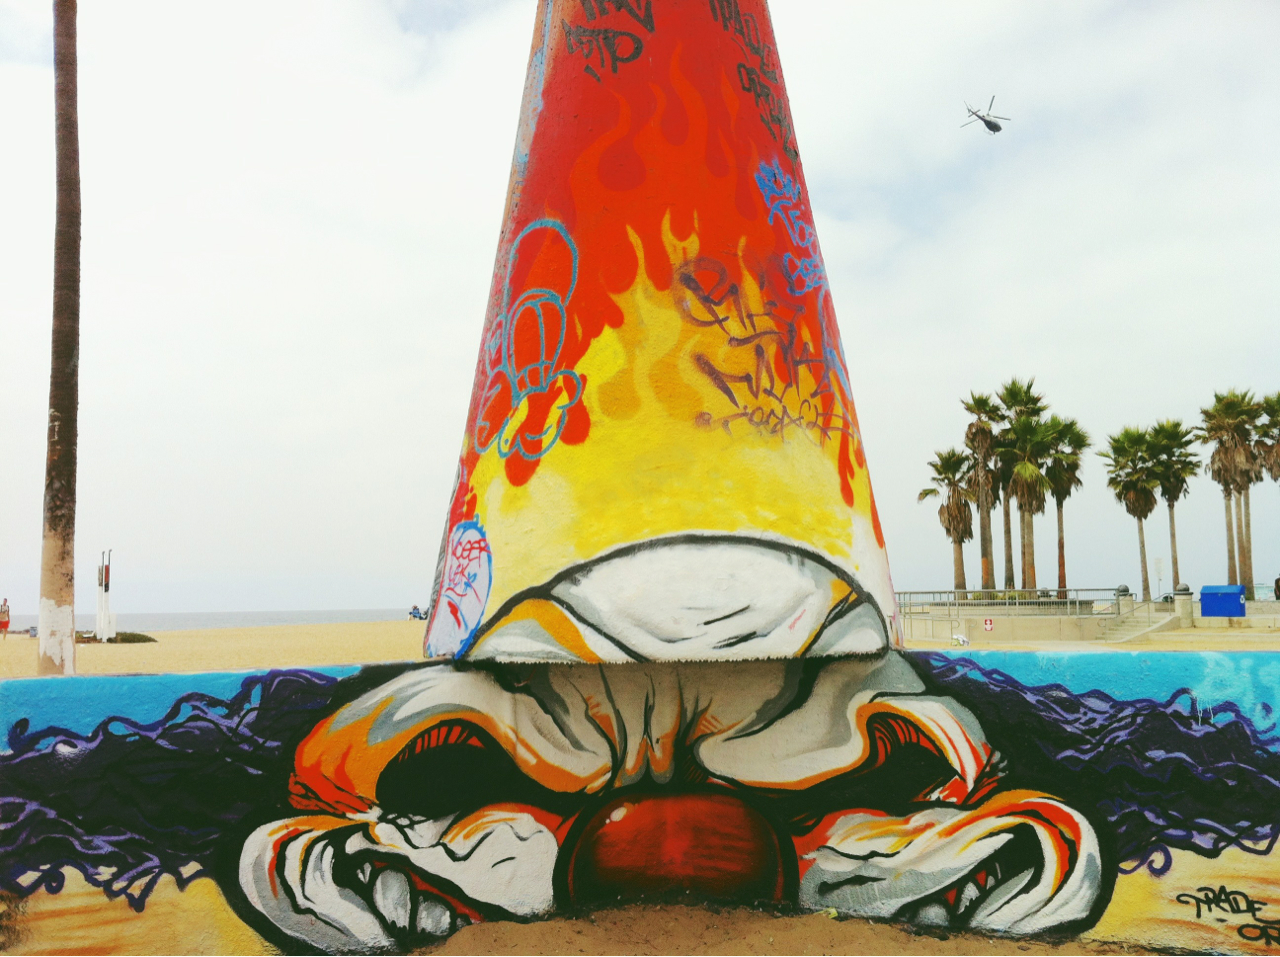 #venice beach #clown #graffiti #wall